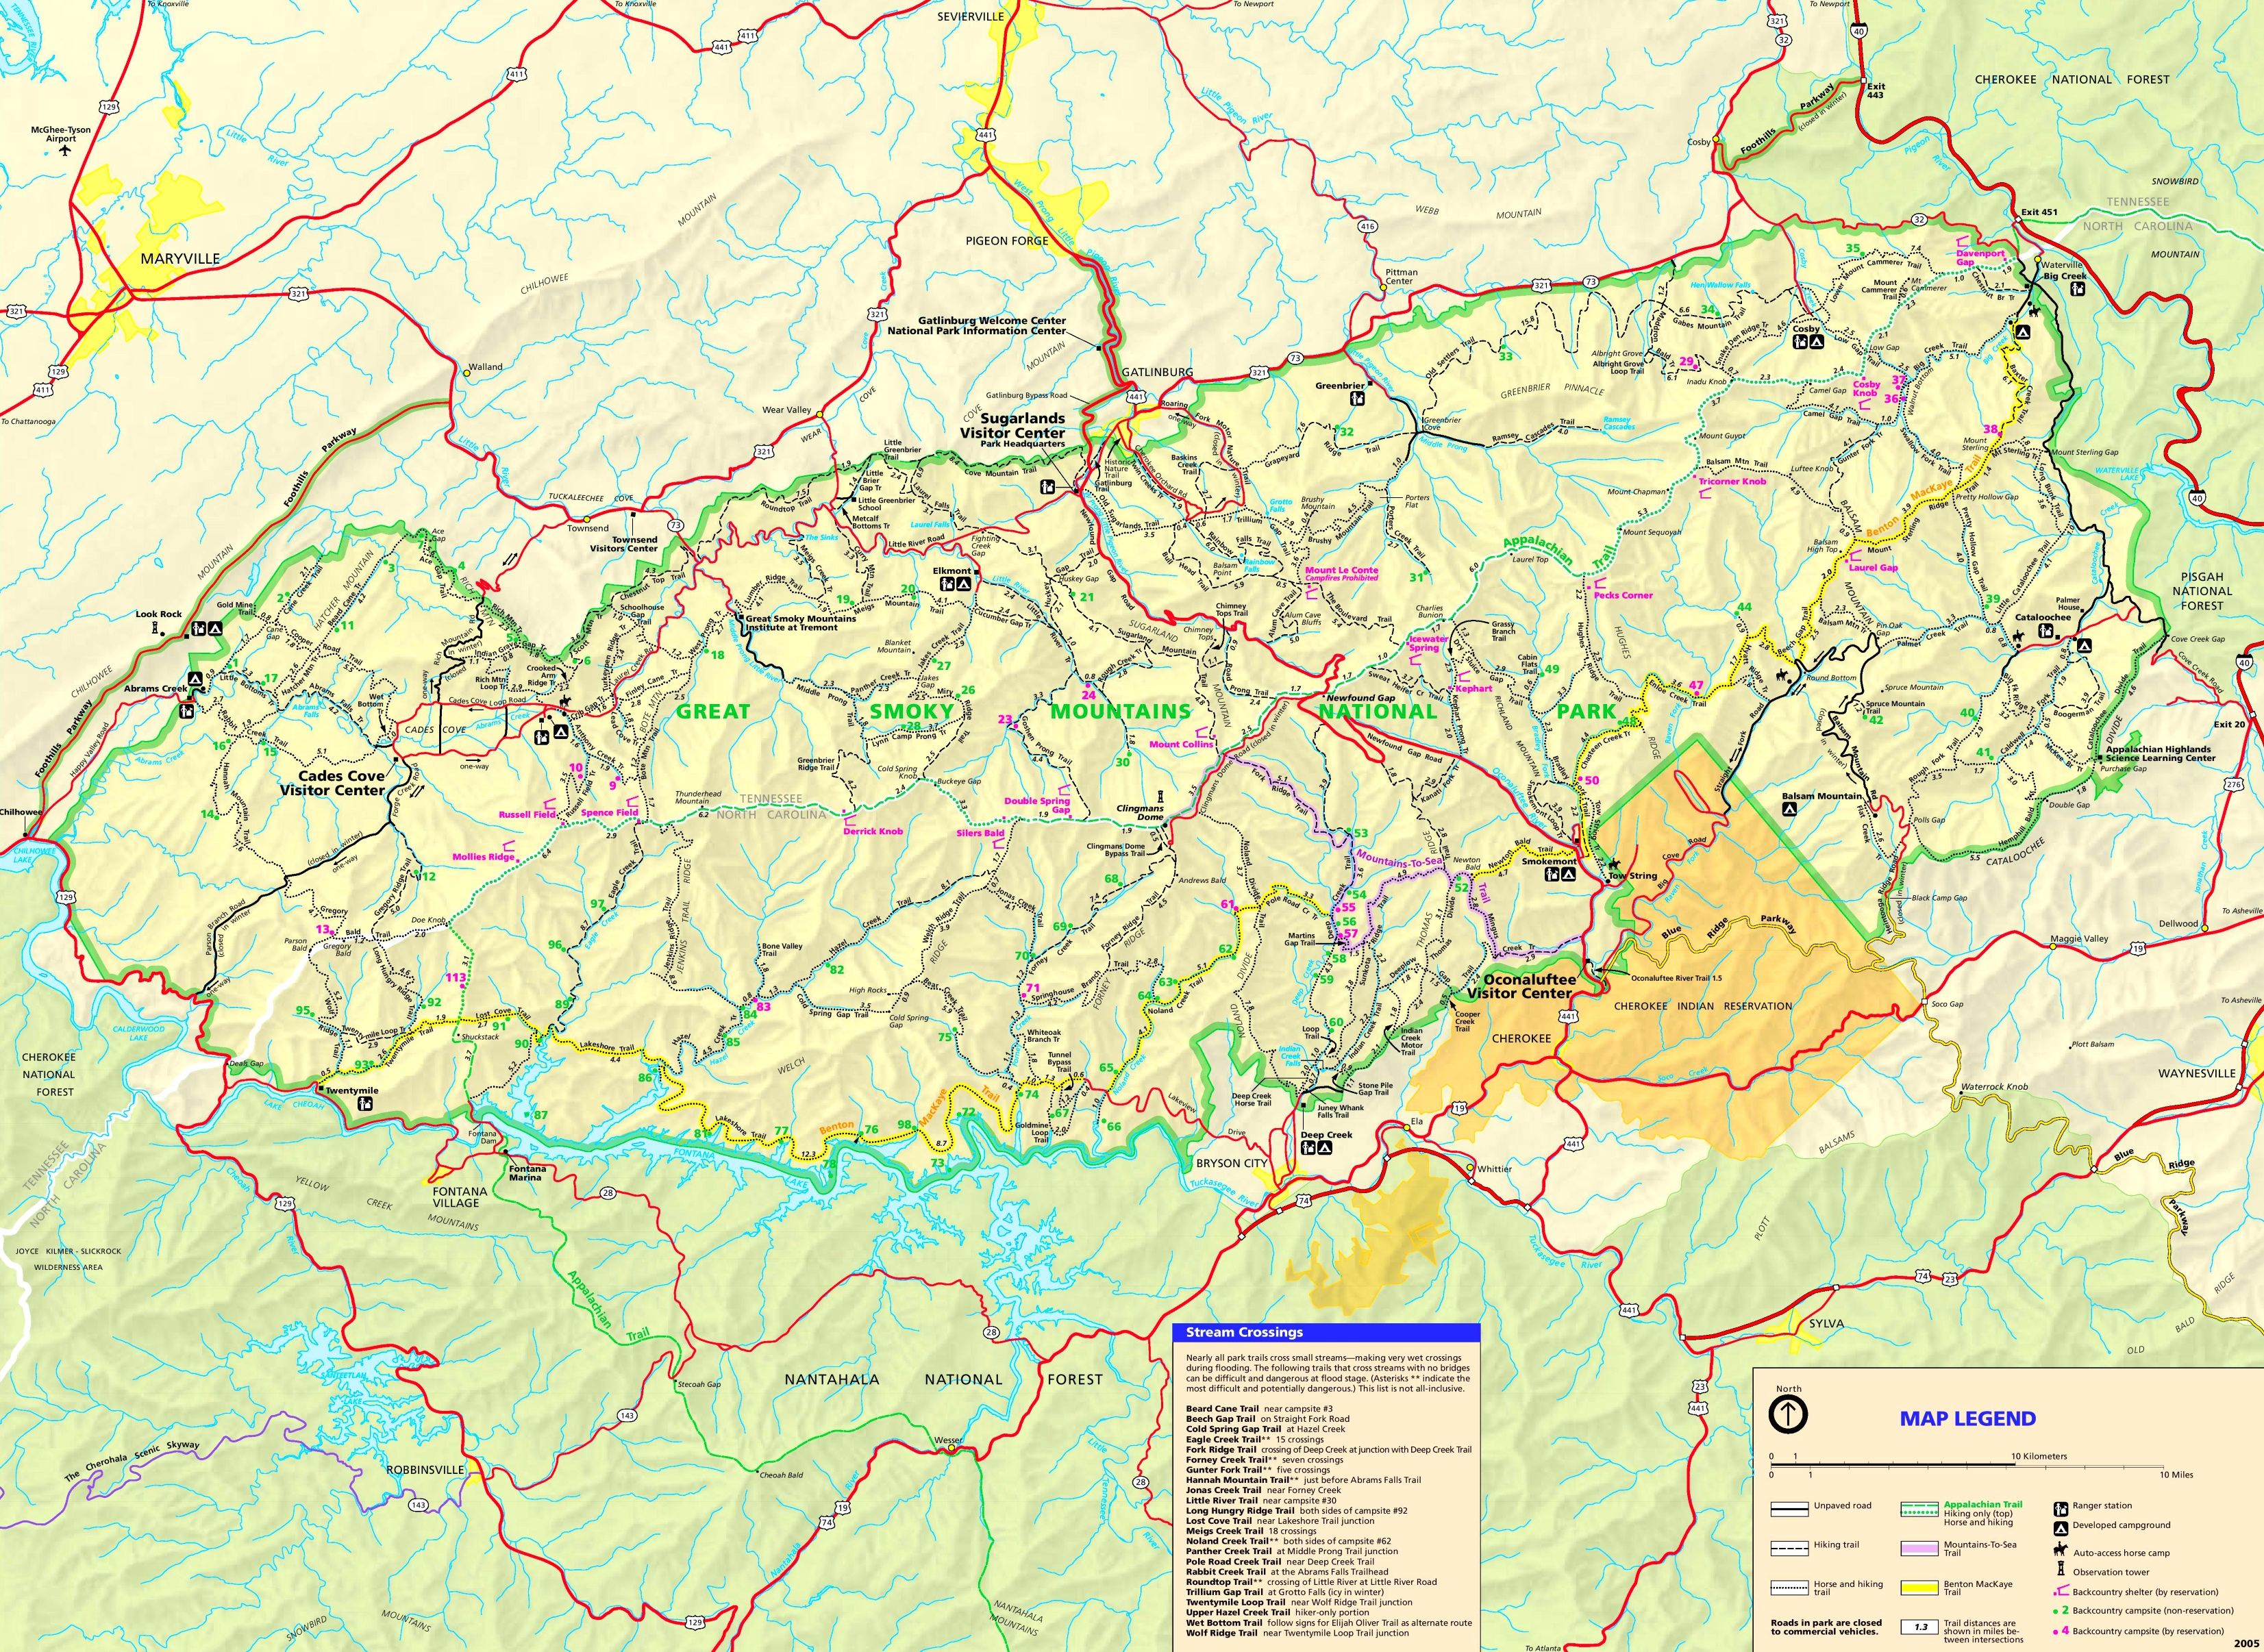 Detailed map of Great Smoky Mountains